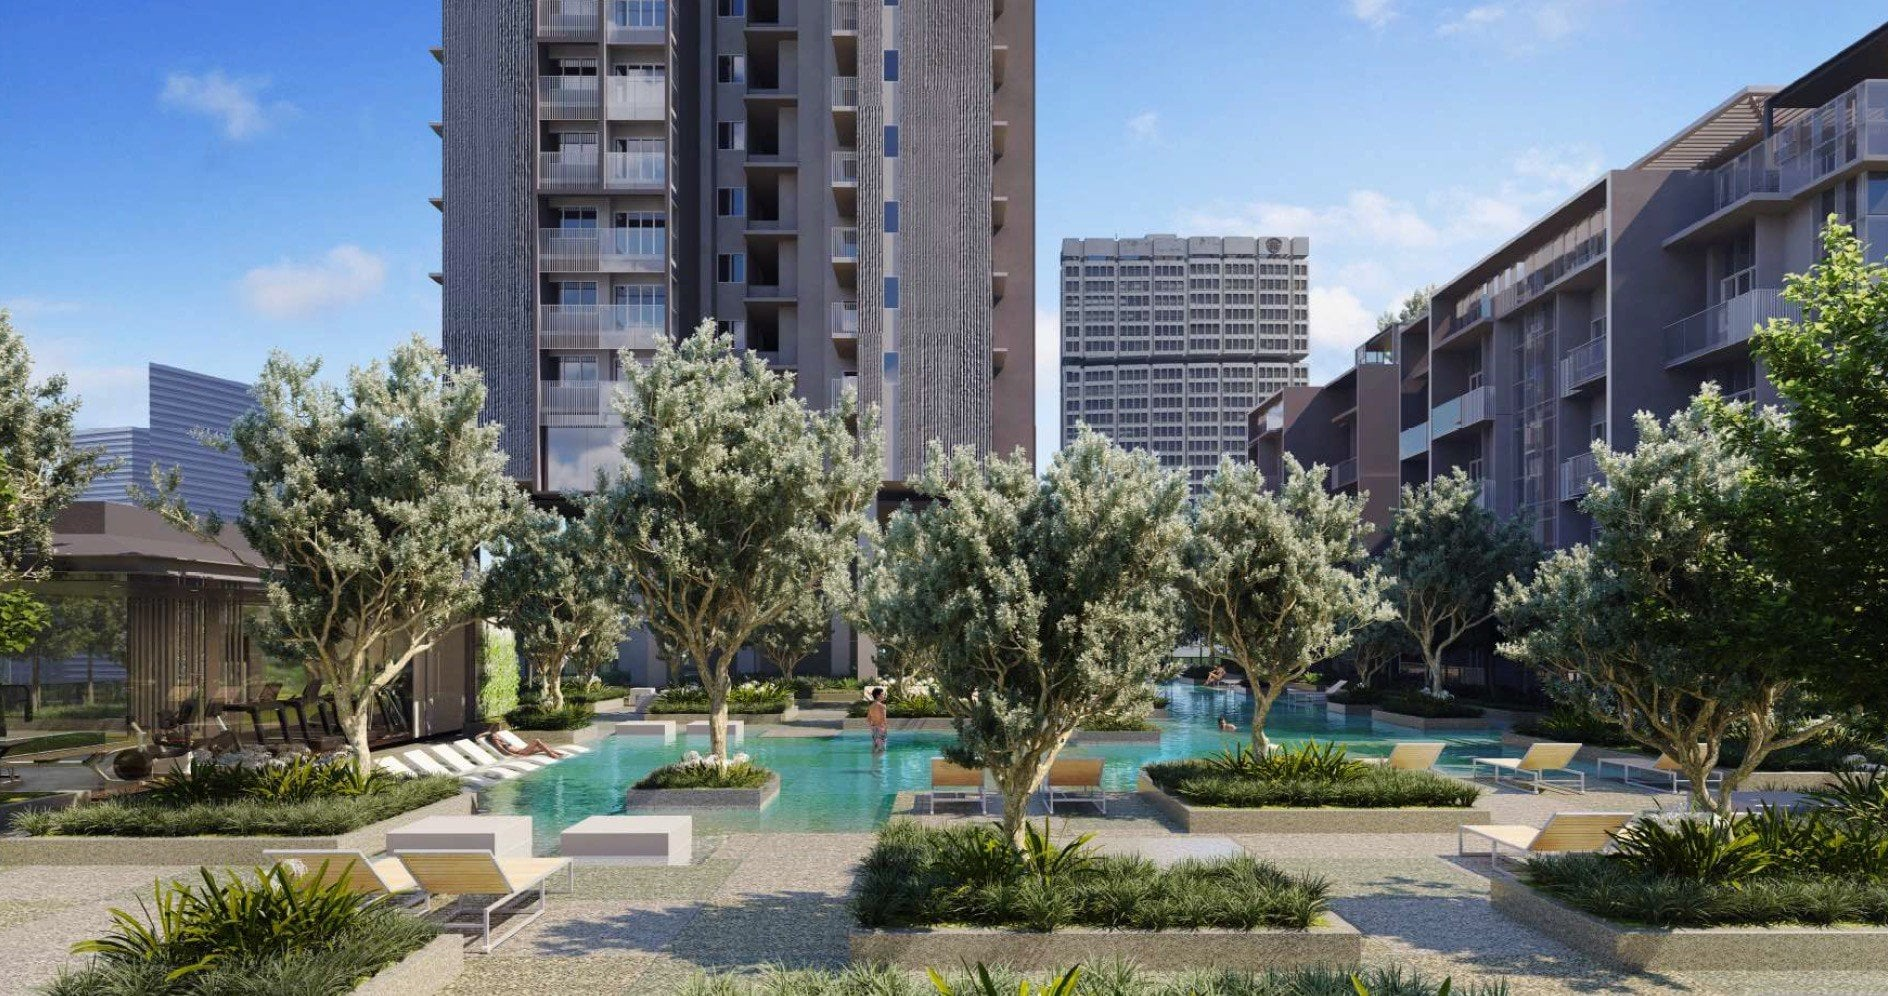 The Brand New Condominium Development 'Bartley Vue' is a Vision of Tomorrow 1